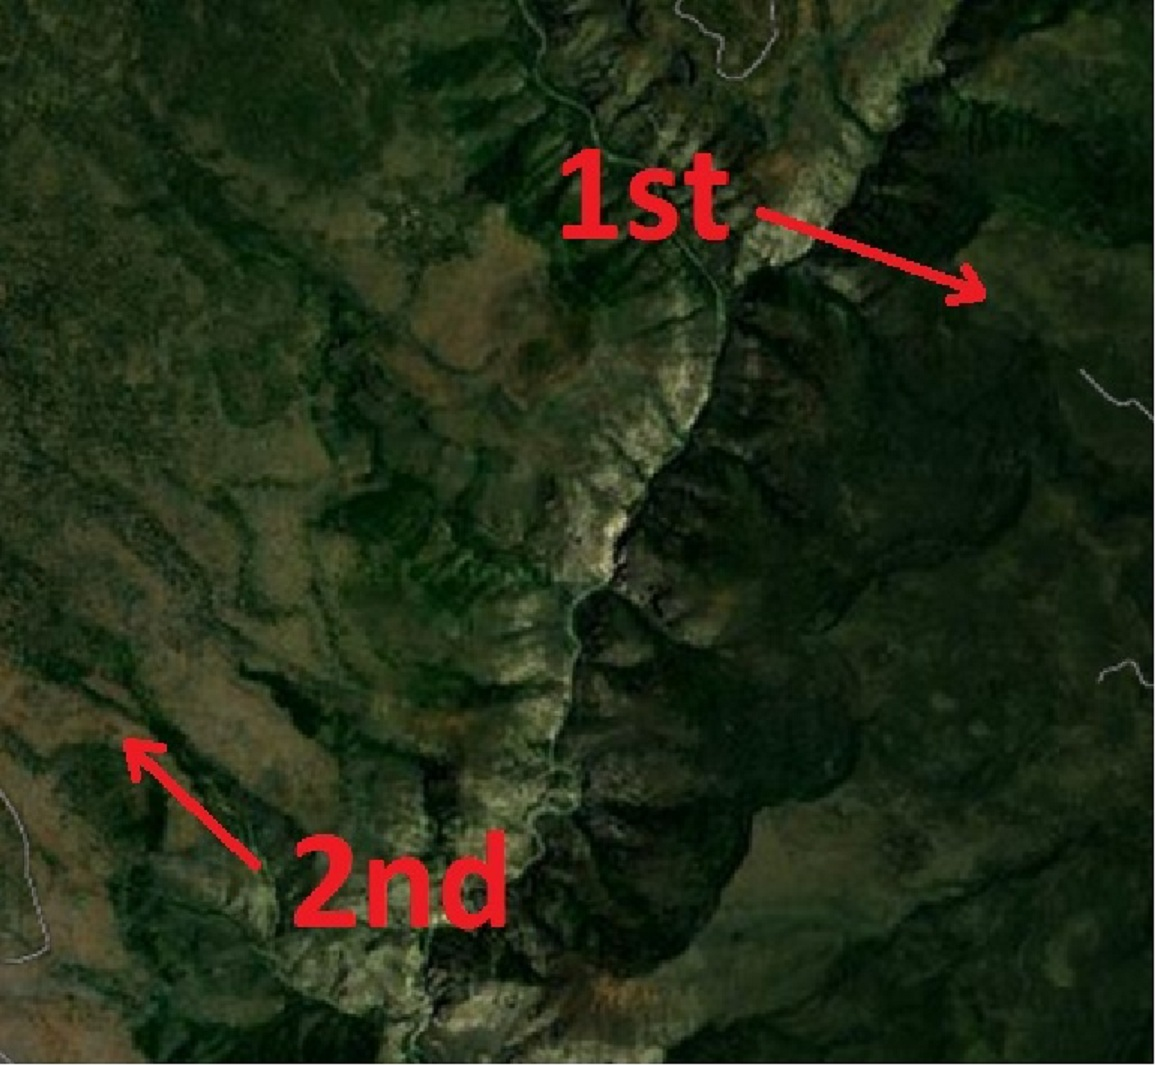 there are many canyons in the area other than sycamore and is very heavily wooded through out the region there has also been a bigfoot movie made in the